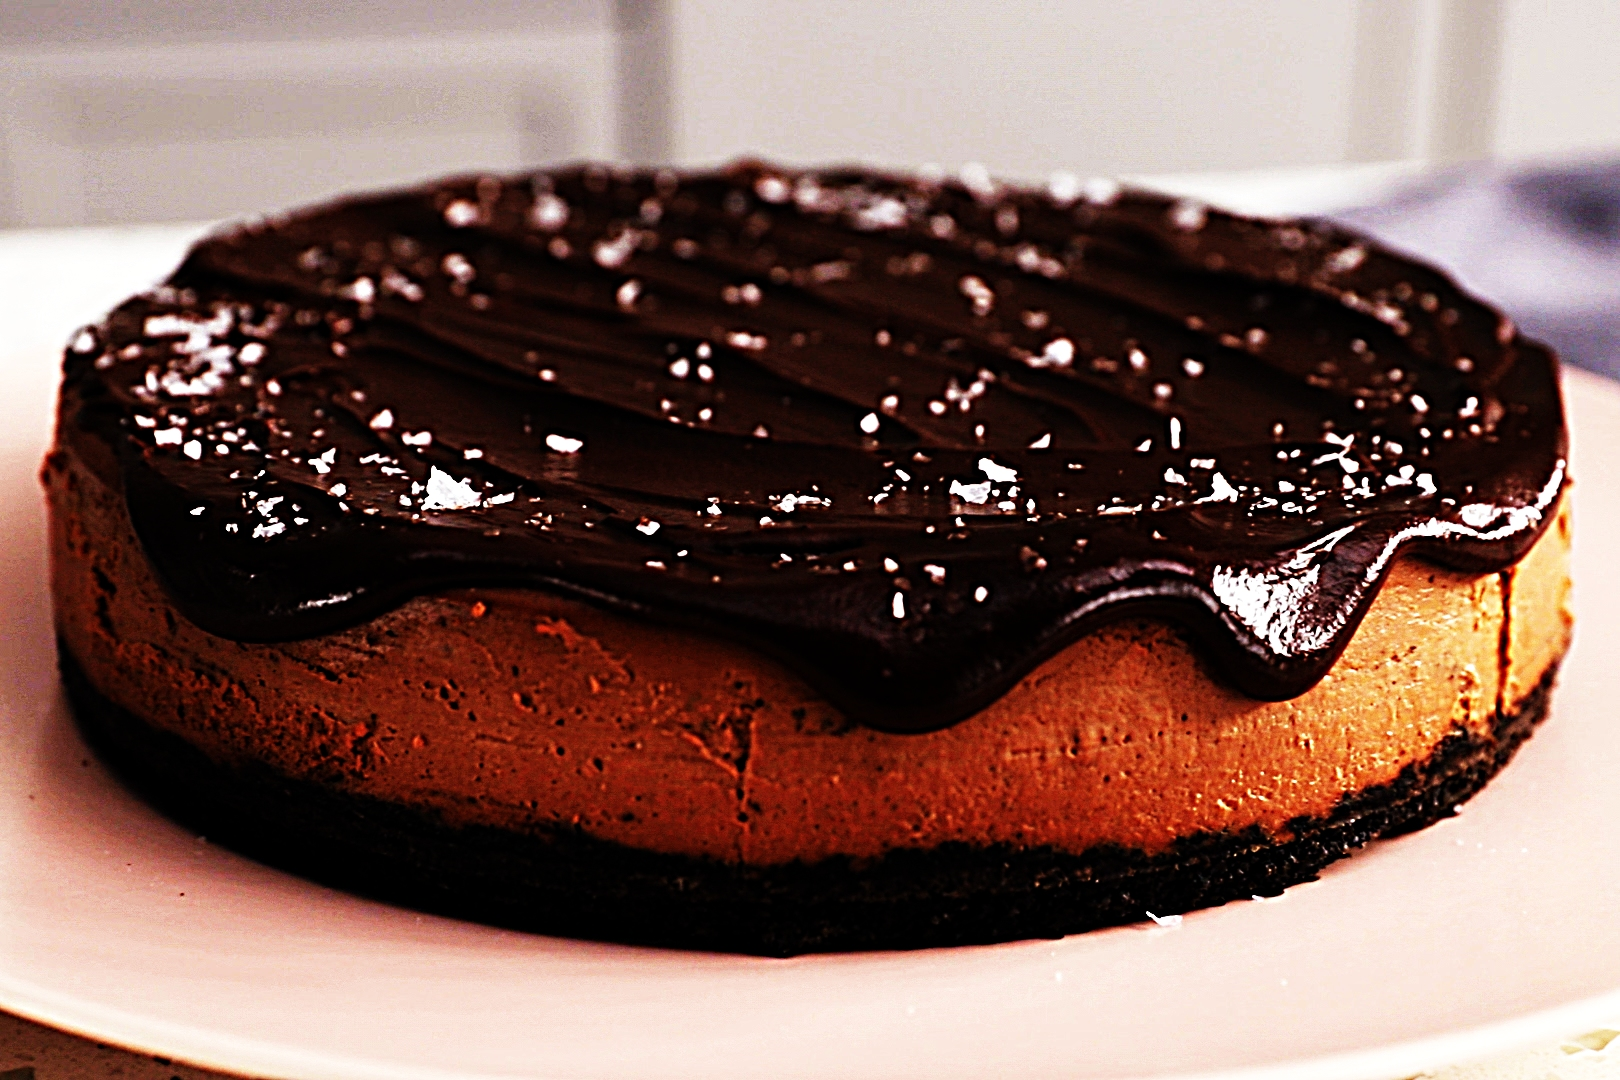 Stupid-Easy Recipe for Triple Chocolate Cheesecake (#1 Top-Rated)